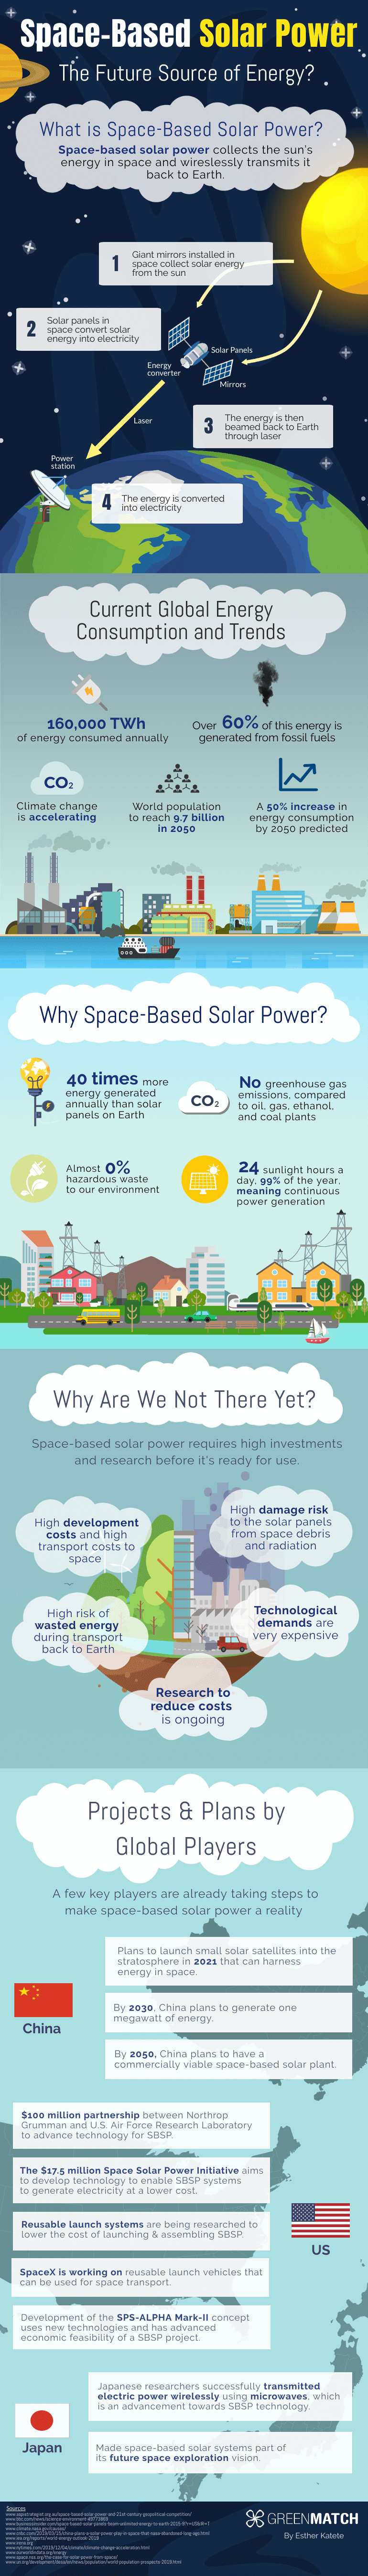 What is Space-Based Solar Power?